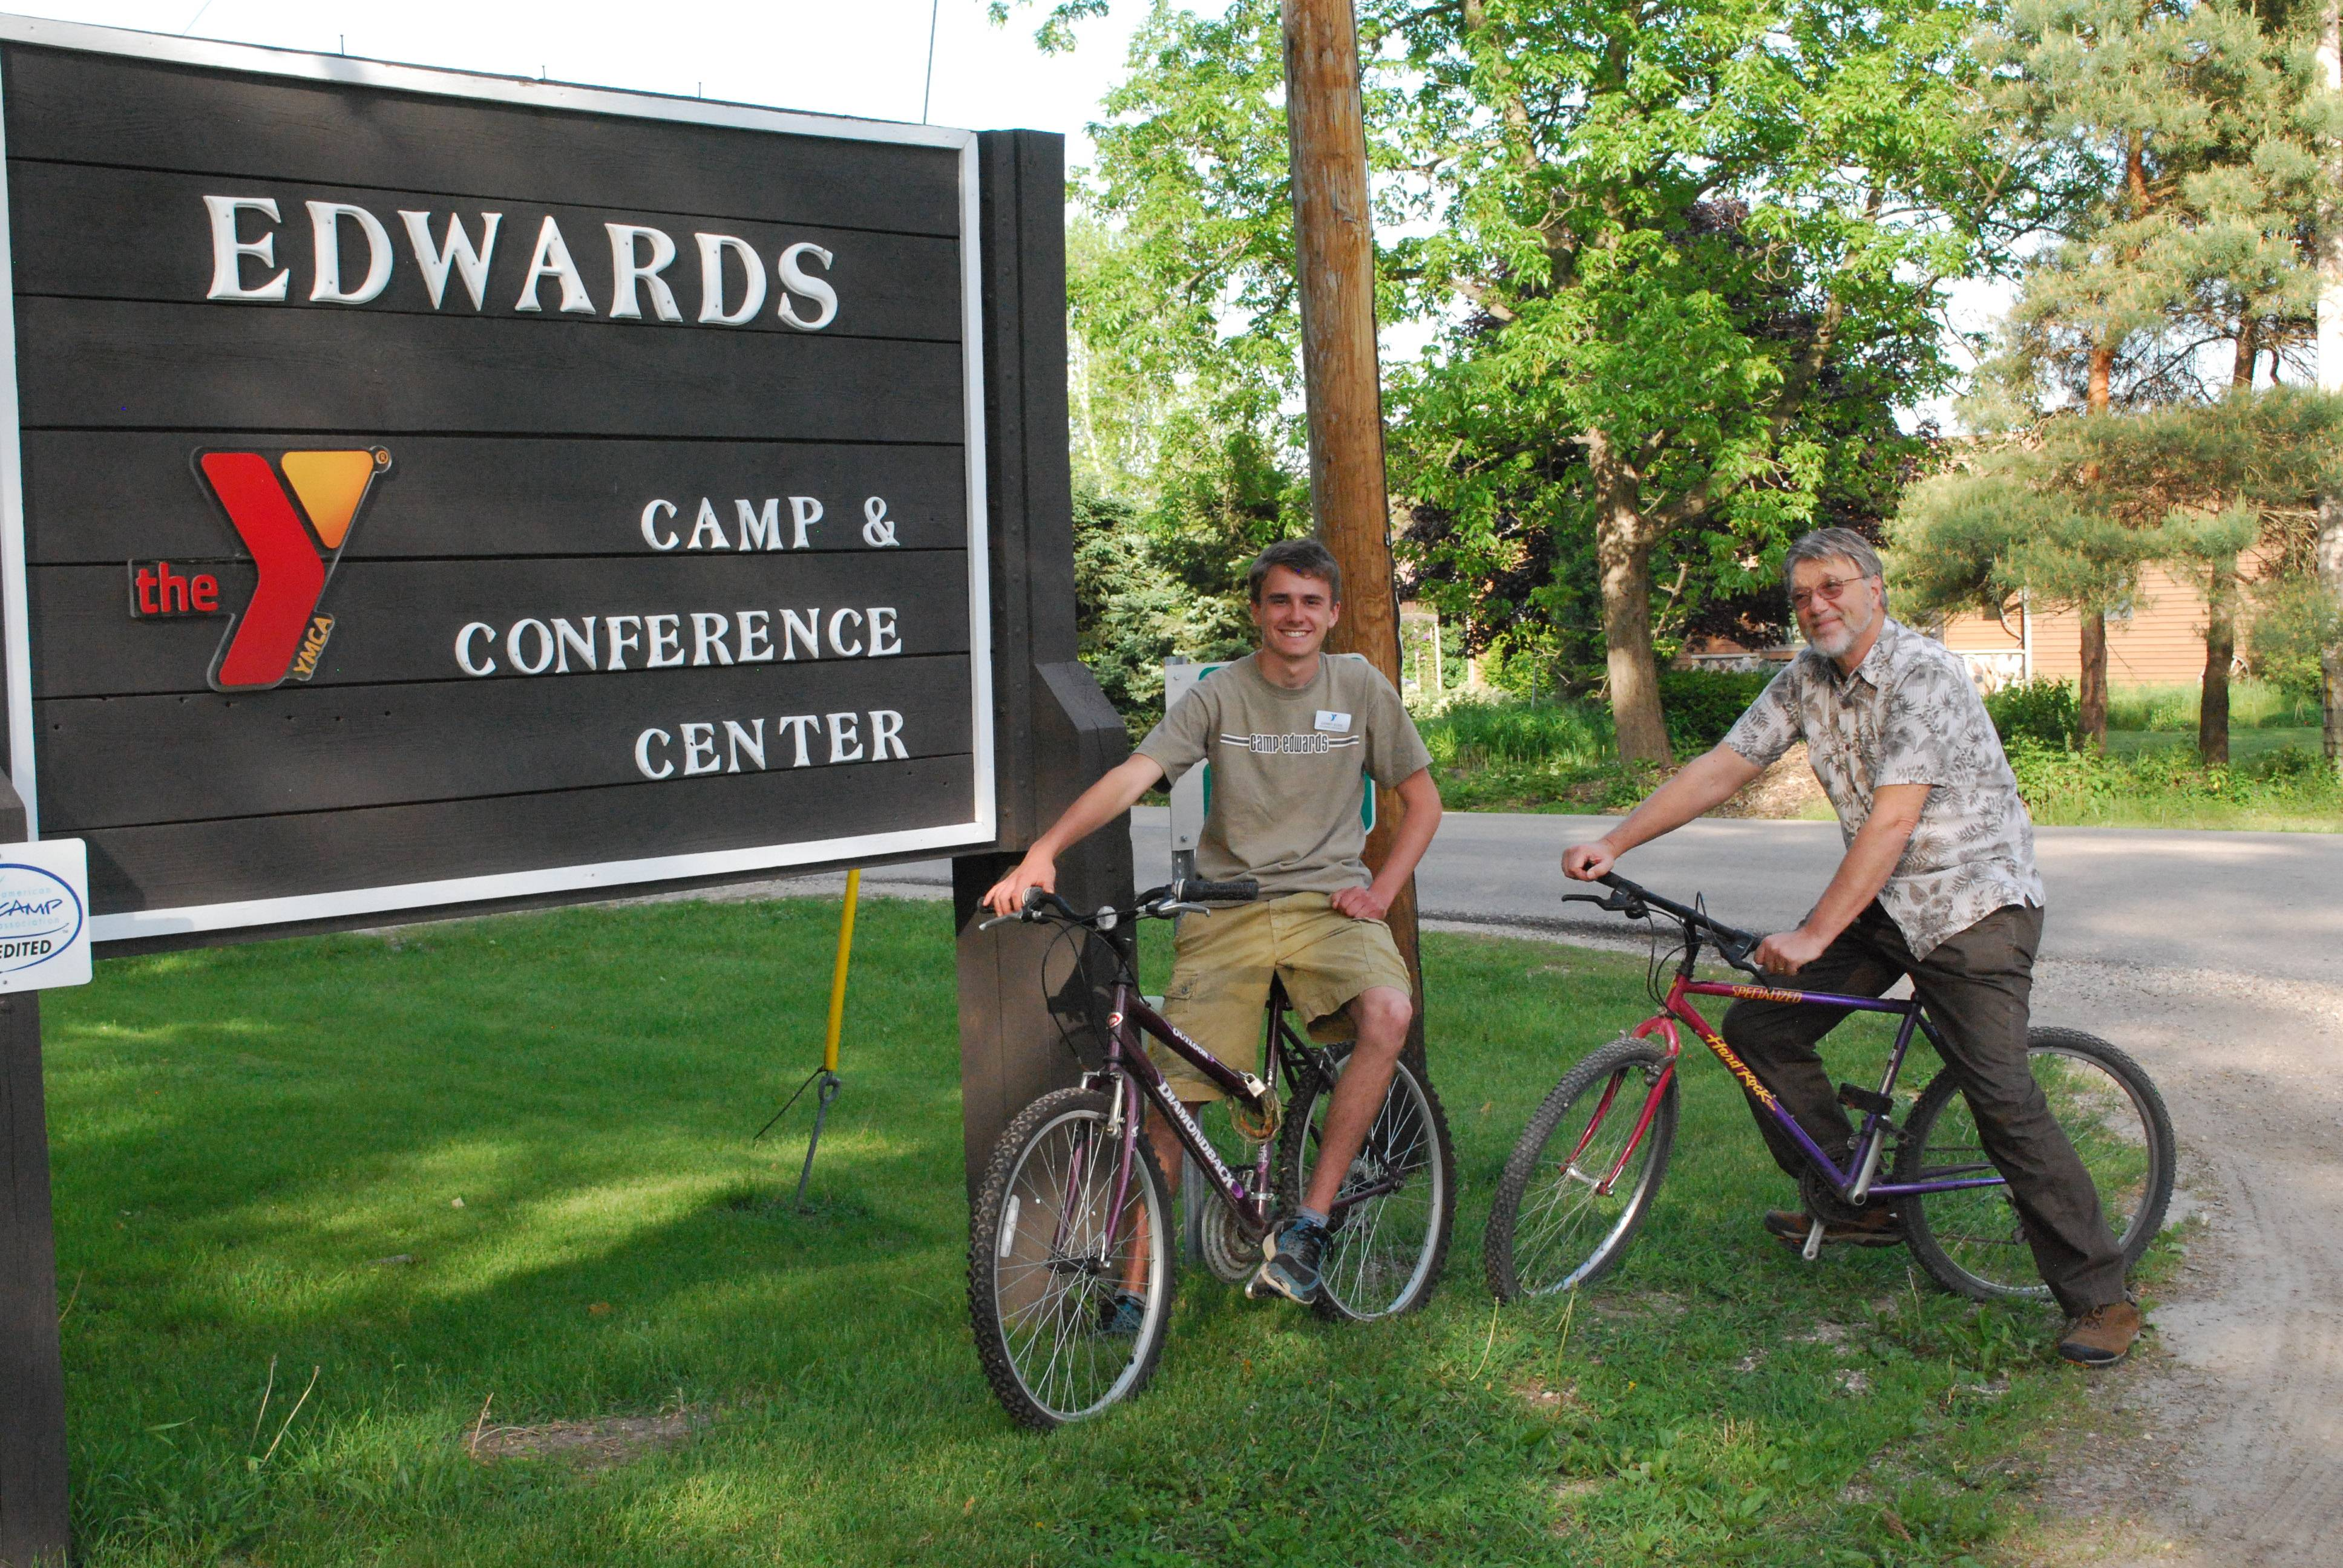 Dan Kerr (left) and David Wedemeyer, both members of Camp Edwards' The Tribe of the Nani Ba Zhu, make sure their legs and bicycle equipment are in shape for the June 16 Bike for Kids fund raising event.  David serves on the Camp Edwards Board of Managers and Dan is a member of the Camp Edwards environmental education staff working with visiting school groups.